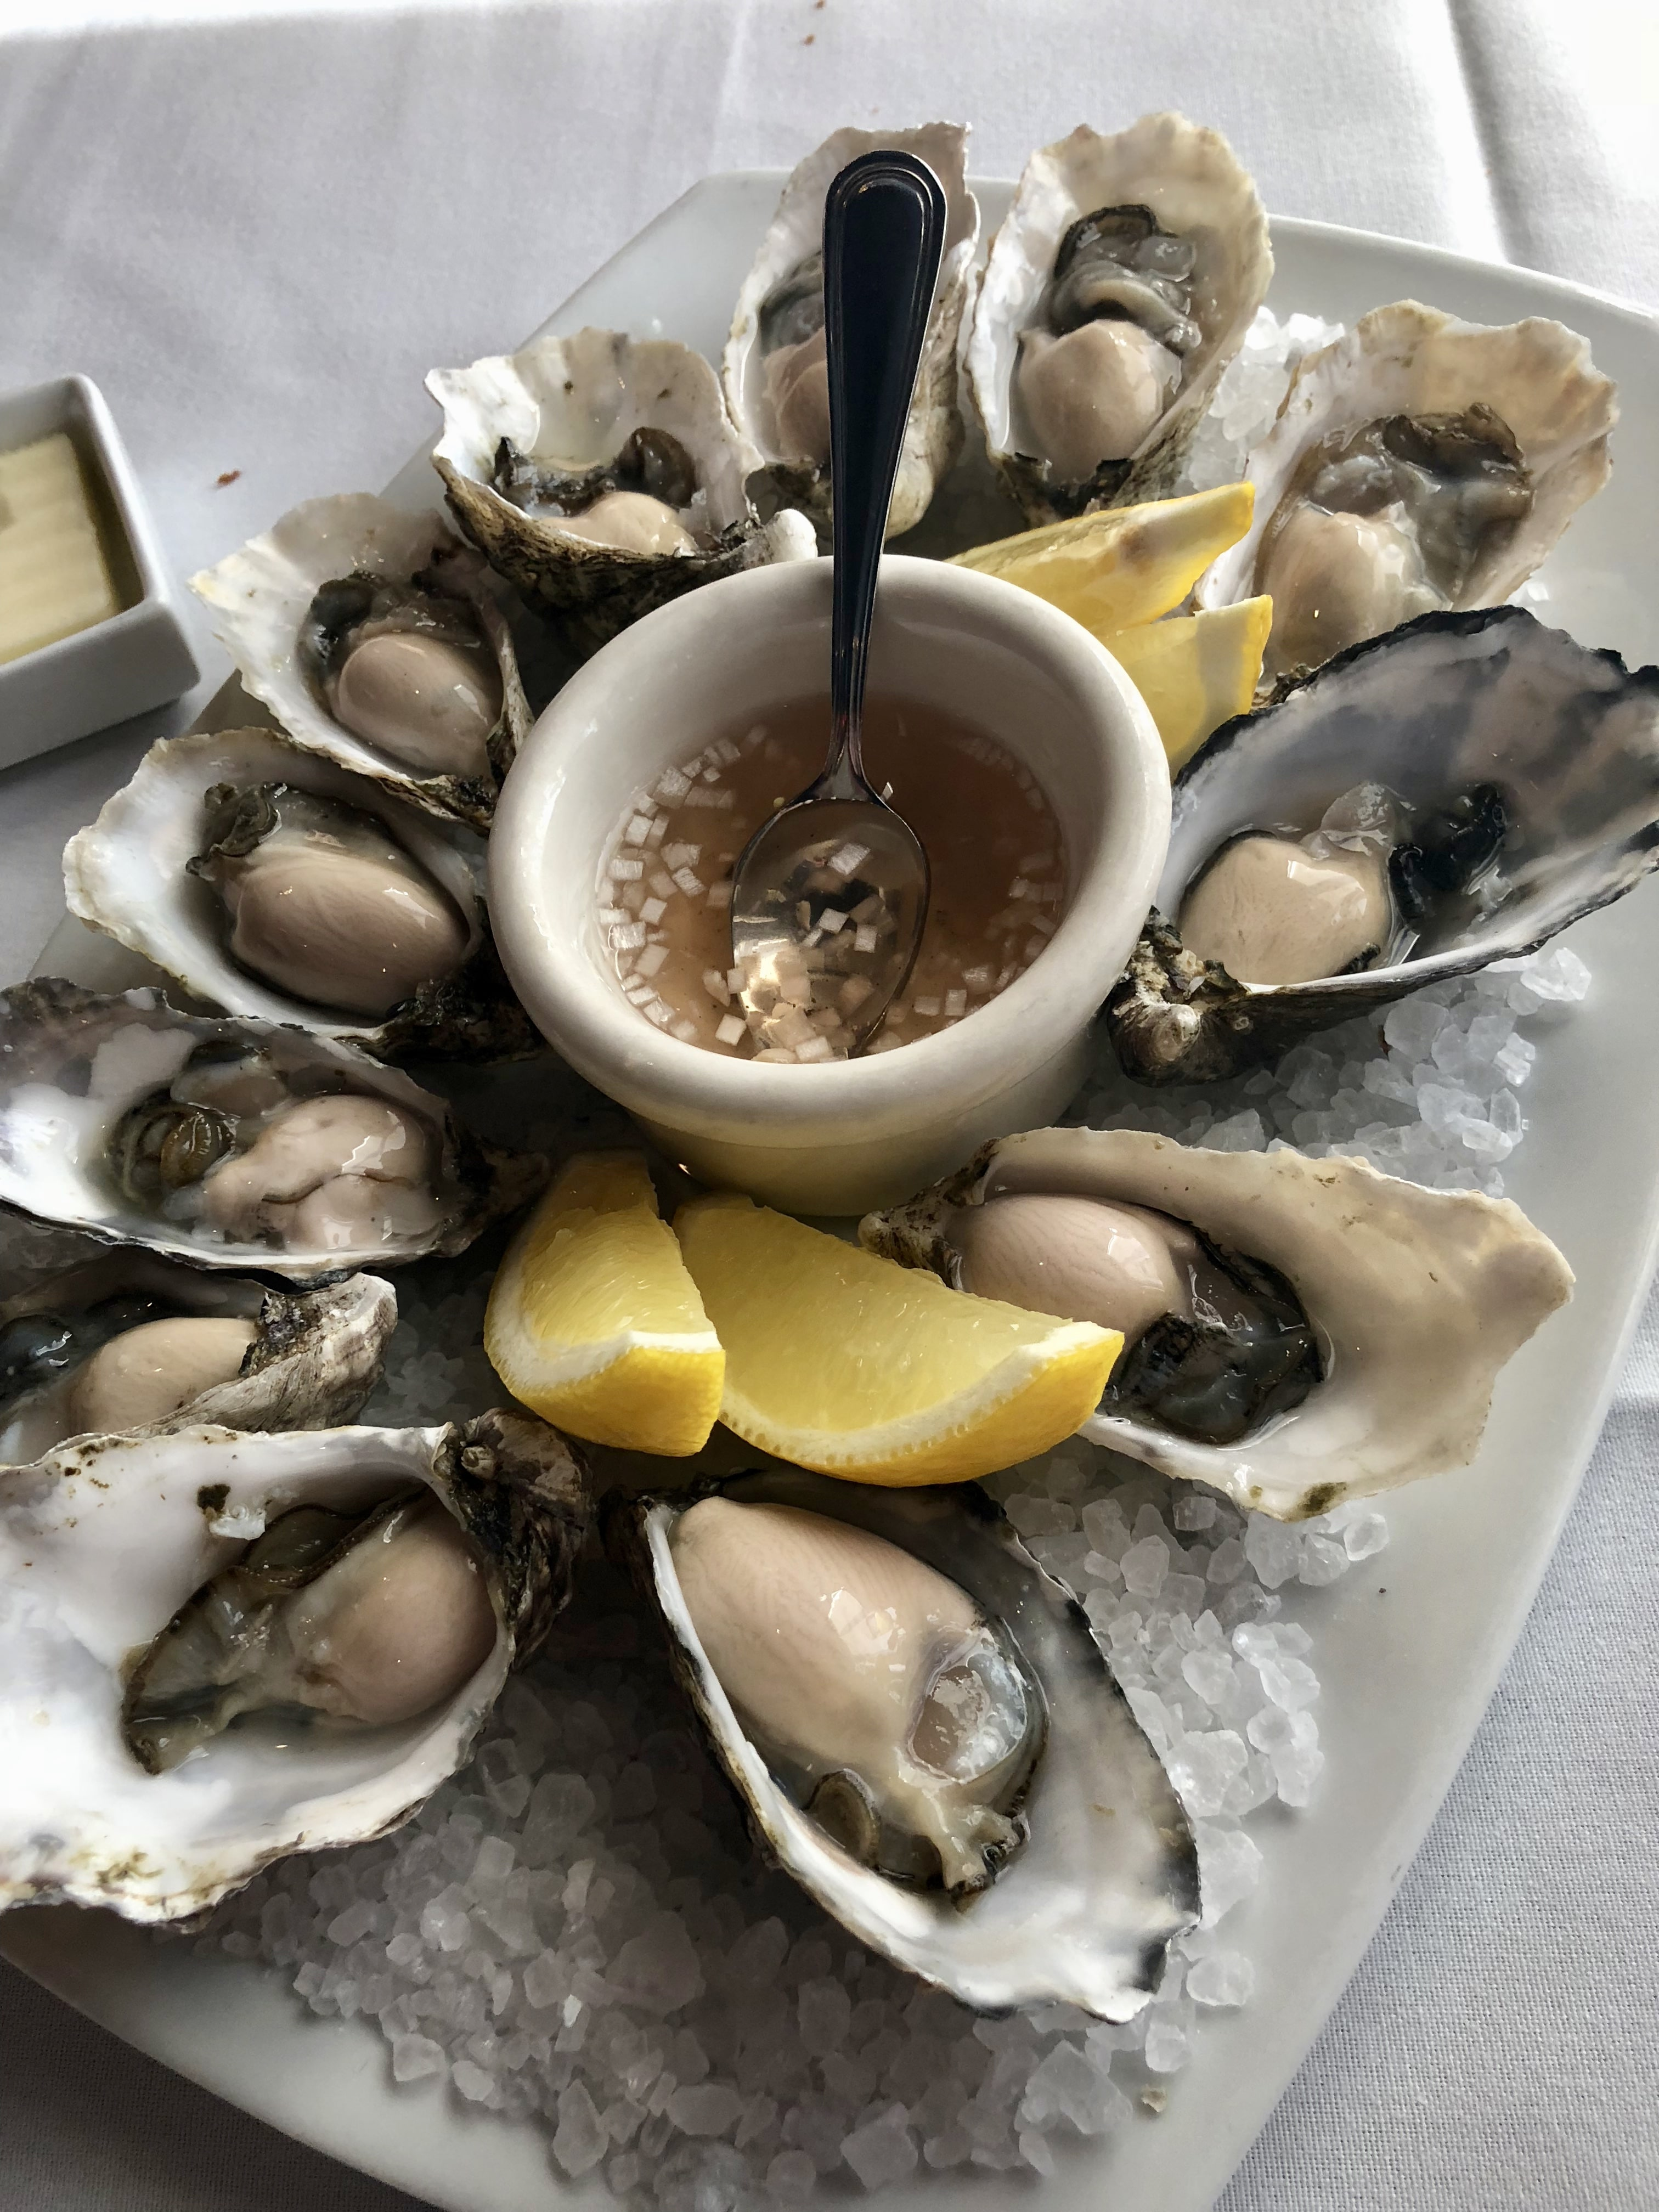 Samish Bay Oysters